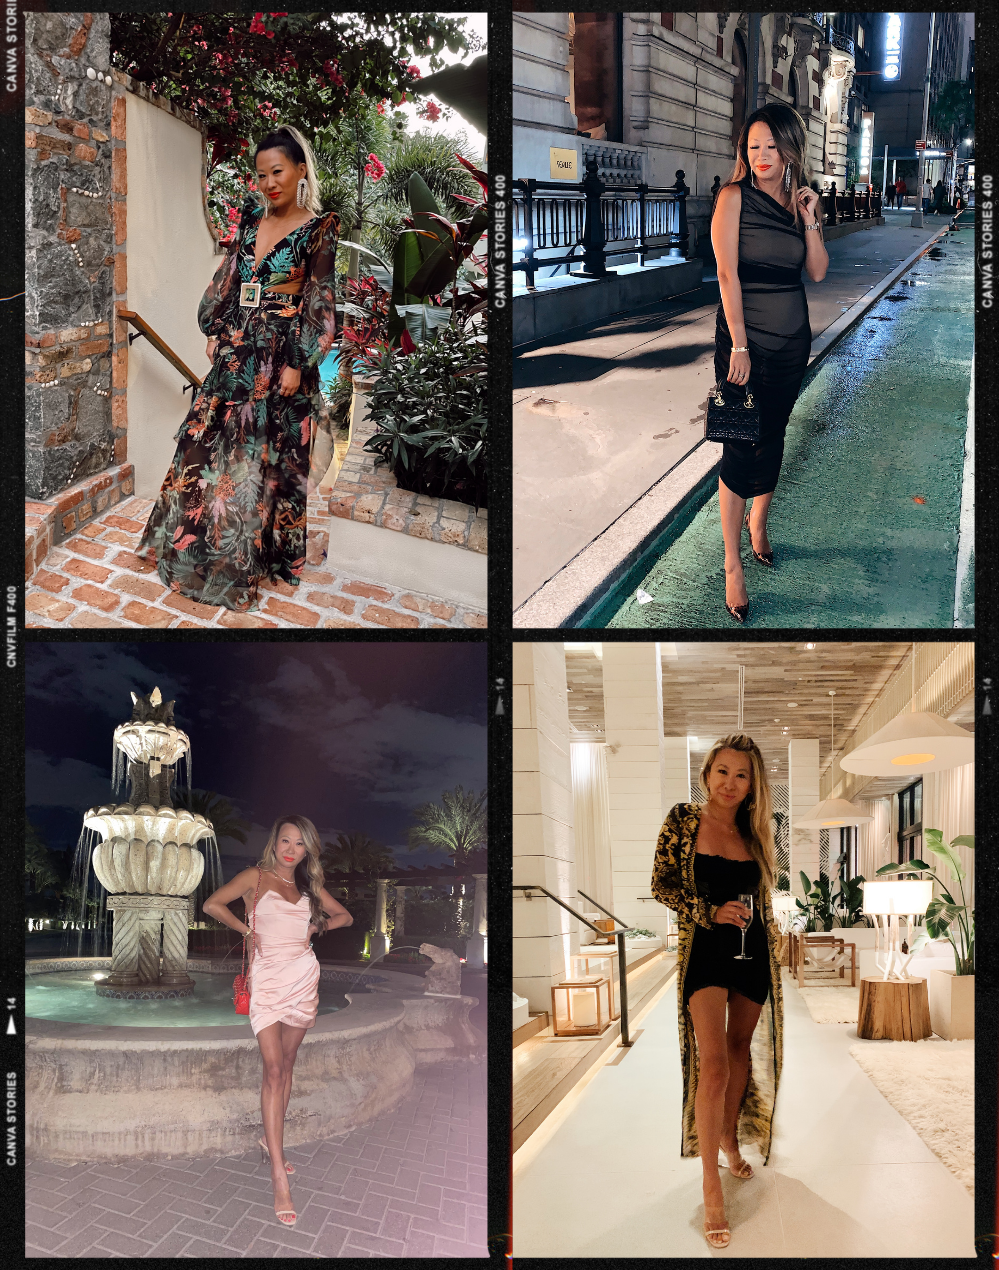 wedding guest dresses, wedding dress ideas, what to wear to a wedding, special event dresses, summer wedding, spring wedding, affordable wedding guest dresses, best guest dressed, party dresses, formal dresses, Red Soles and Red Wine, Jennifer Worman